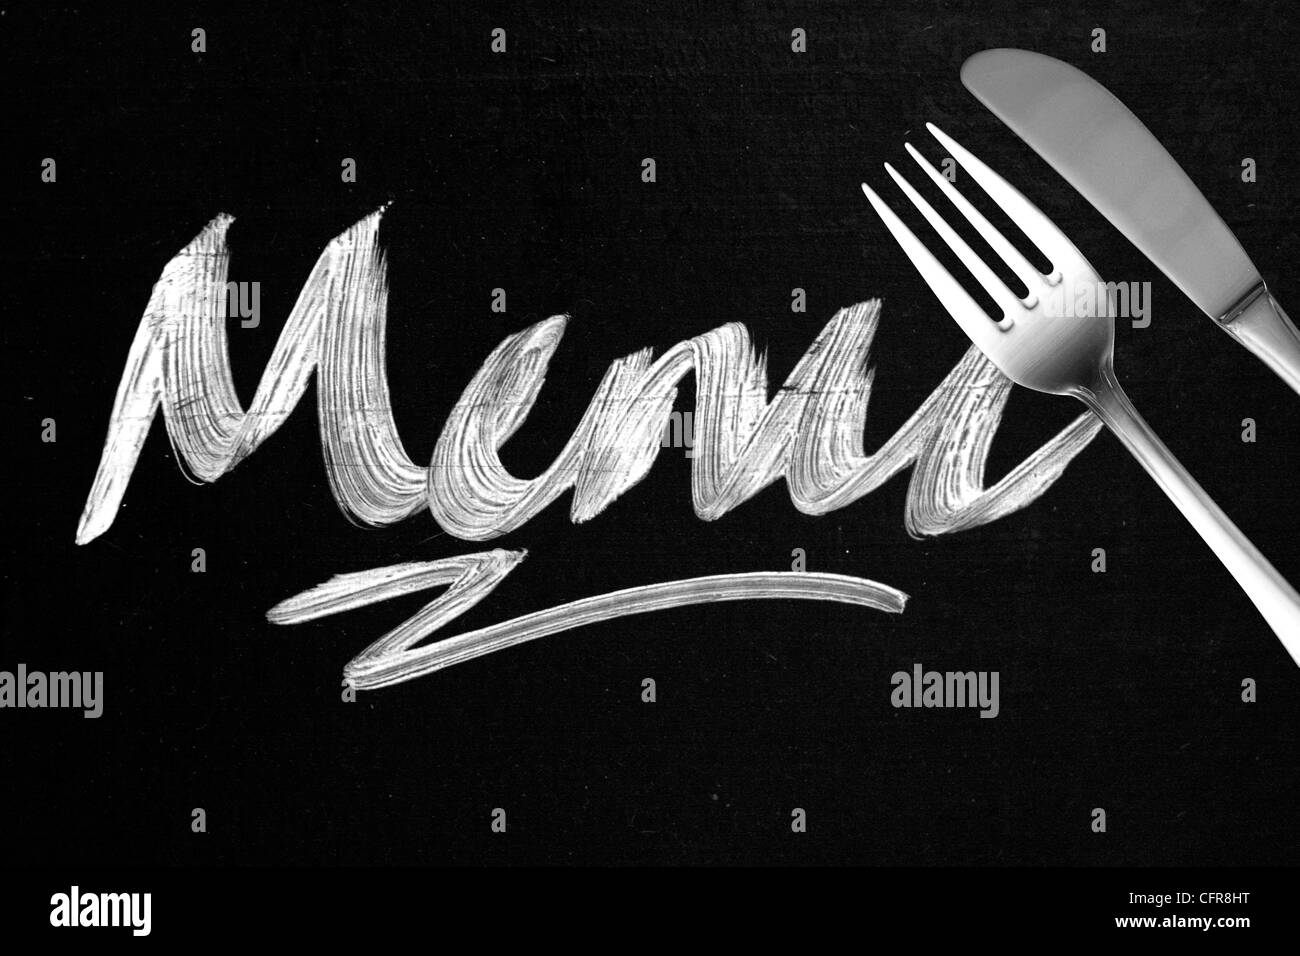 Menu Photo Stock